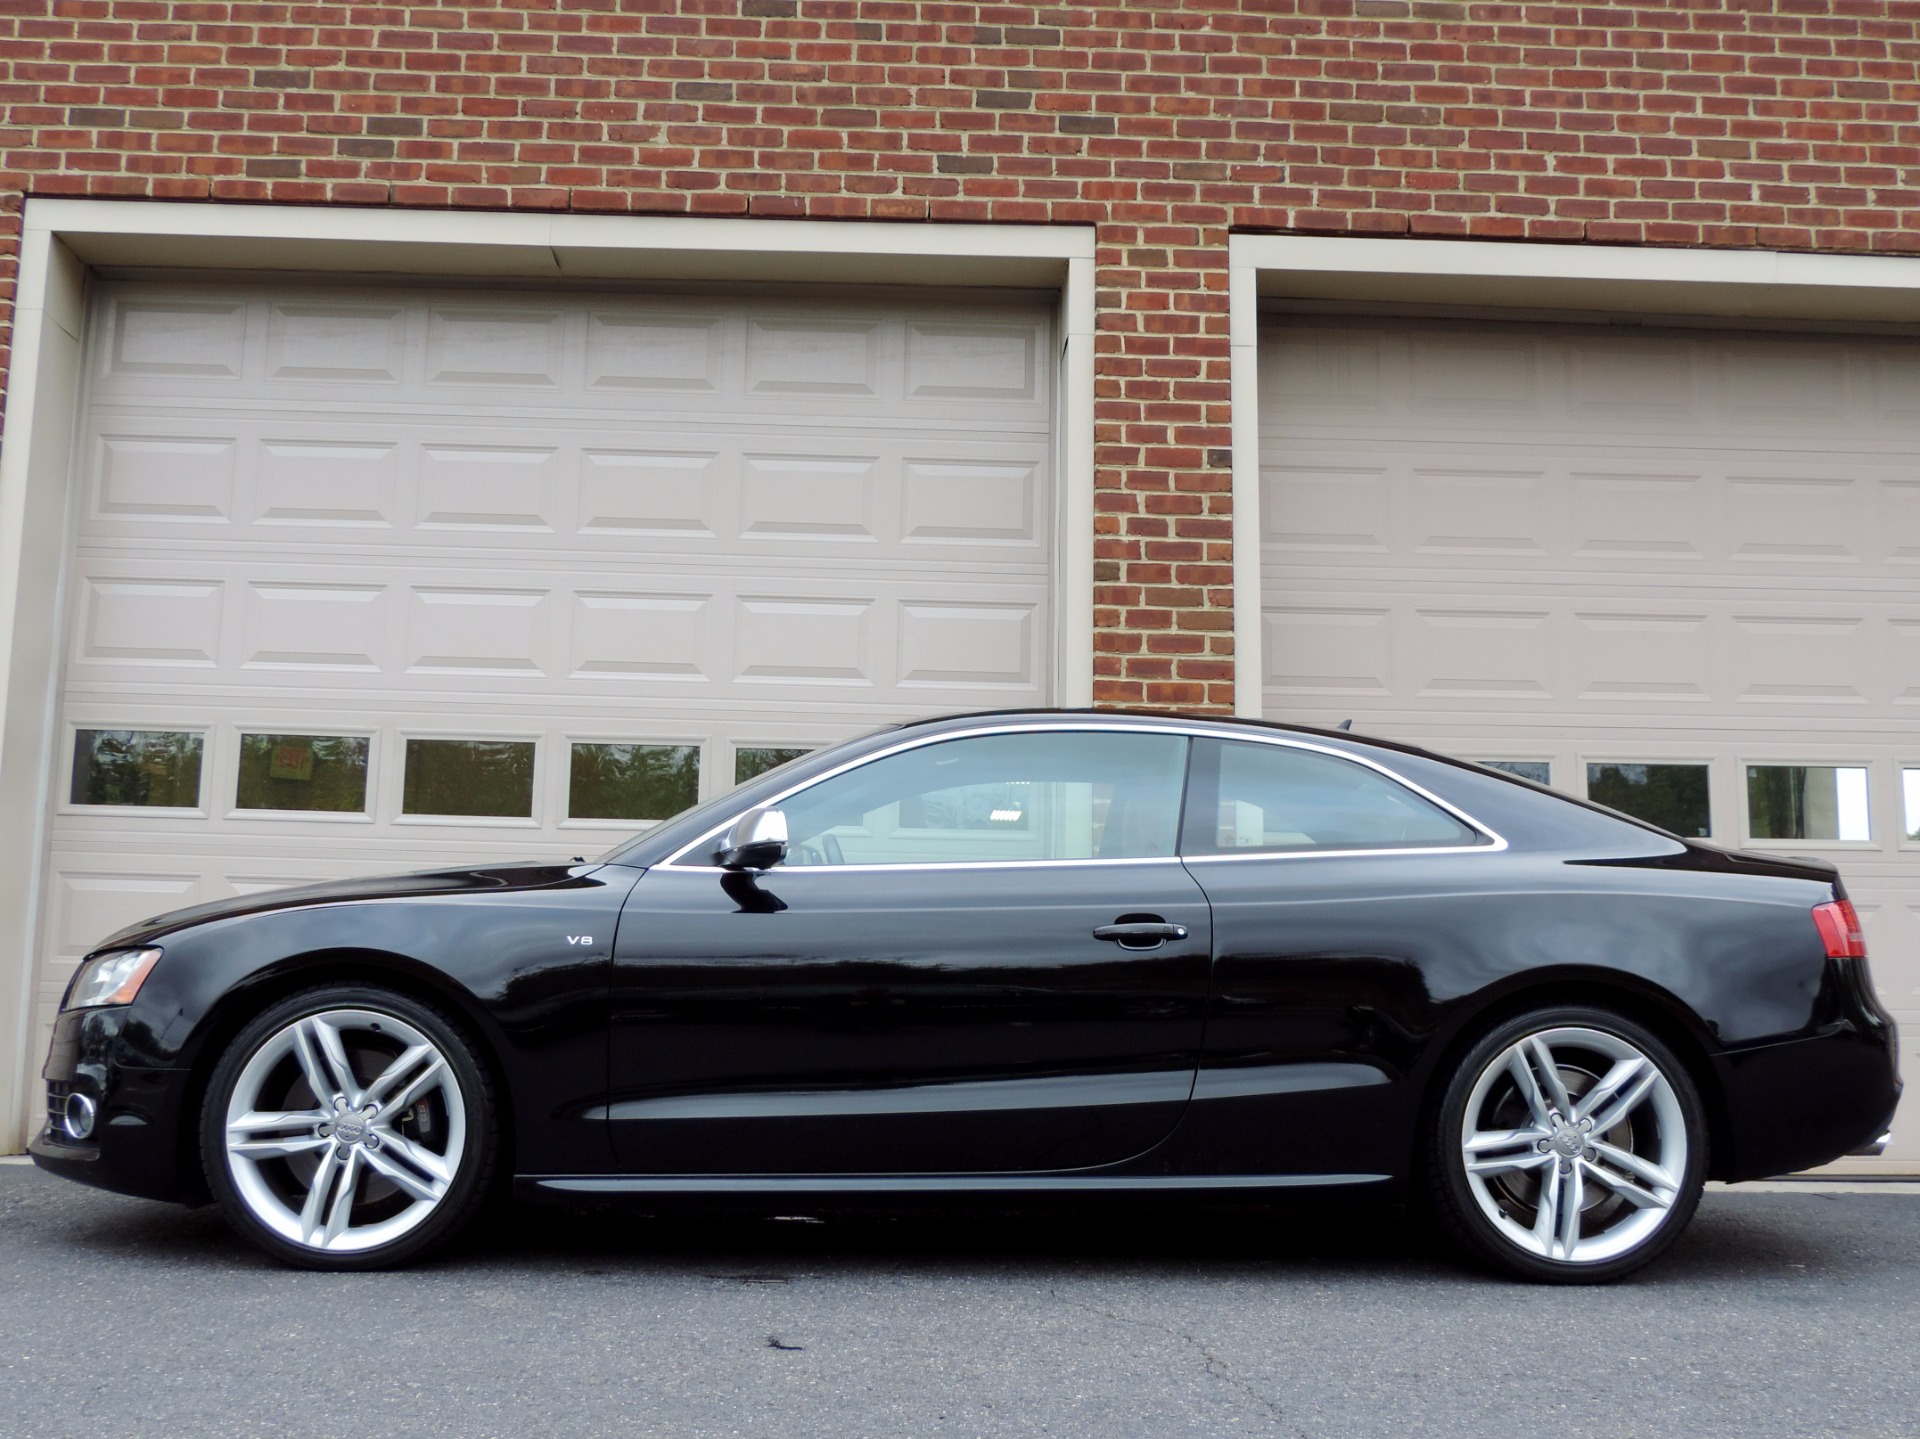 2010 Audi S5 4 2 Quattro Prestige Stock 018517 For Sale